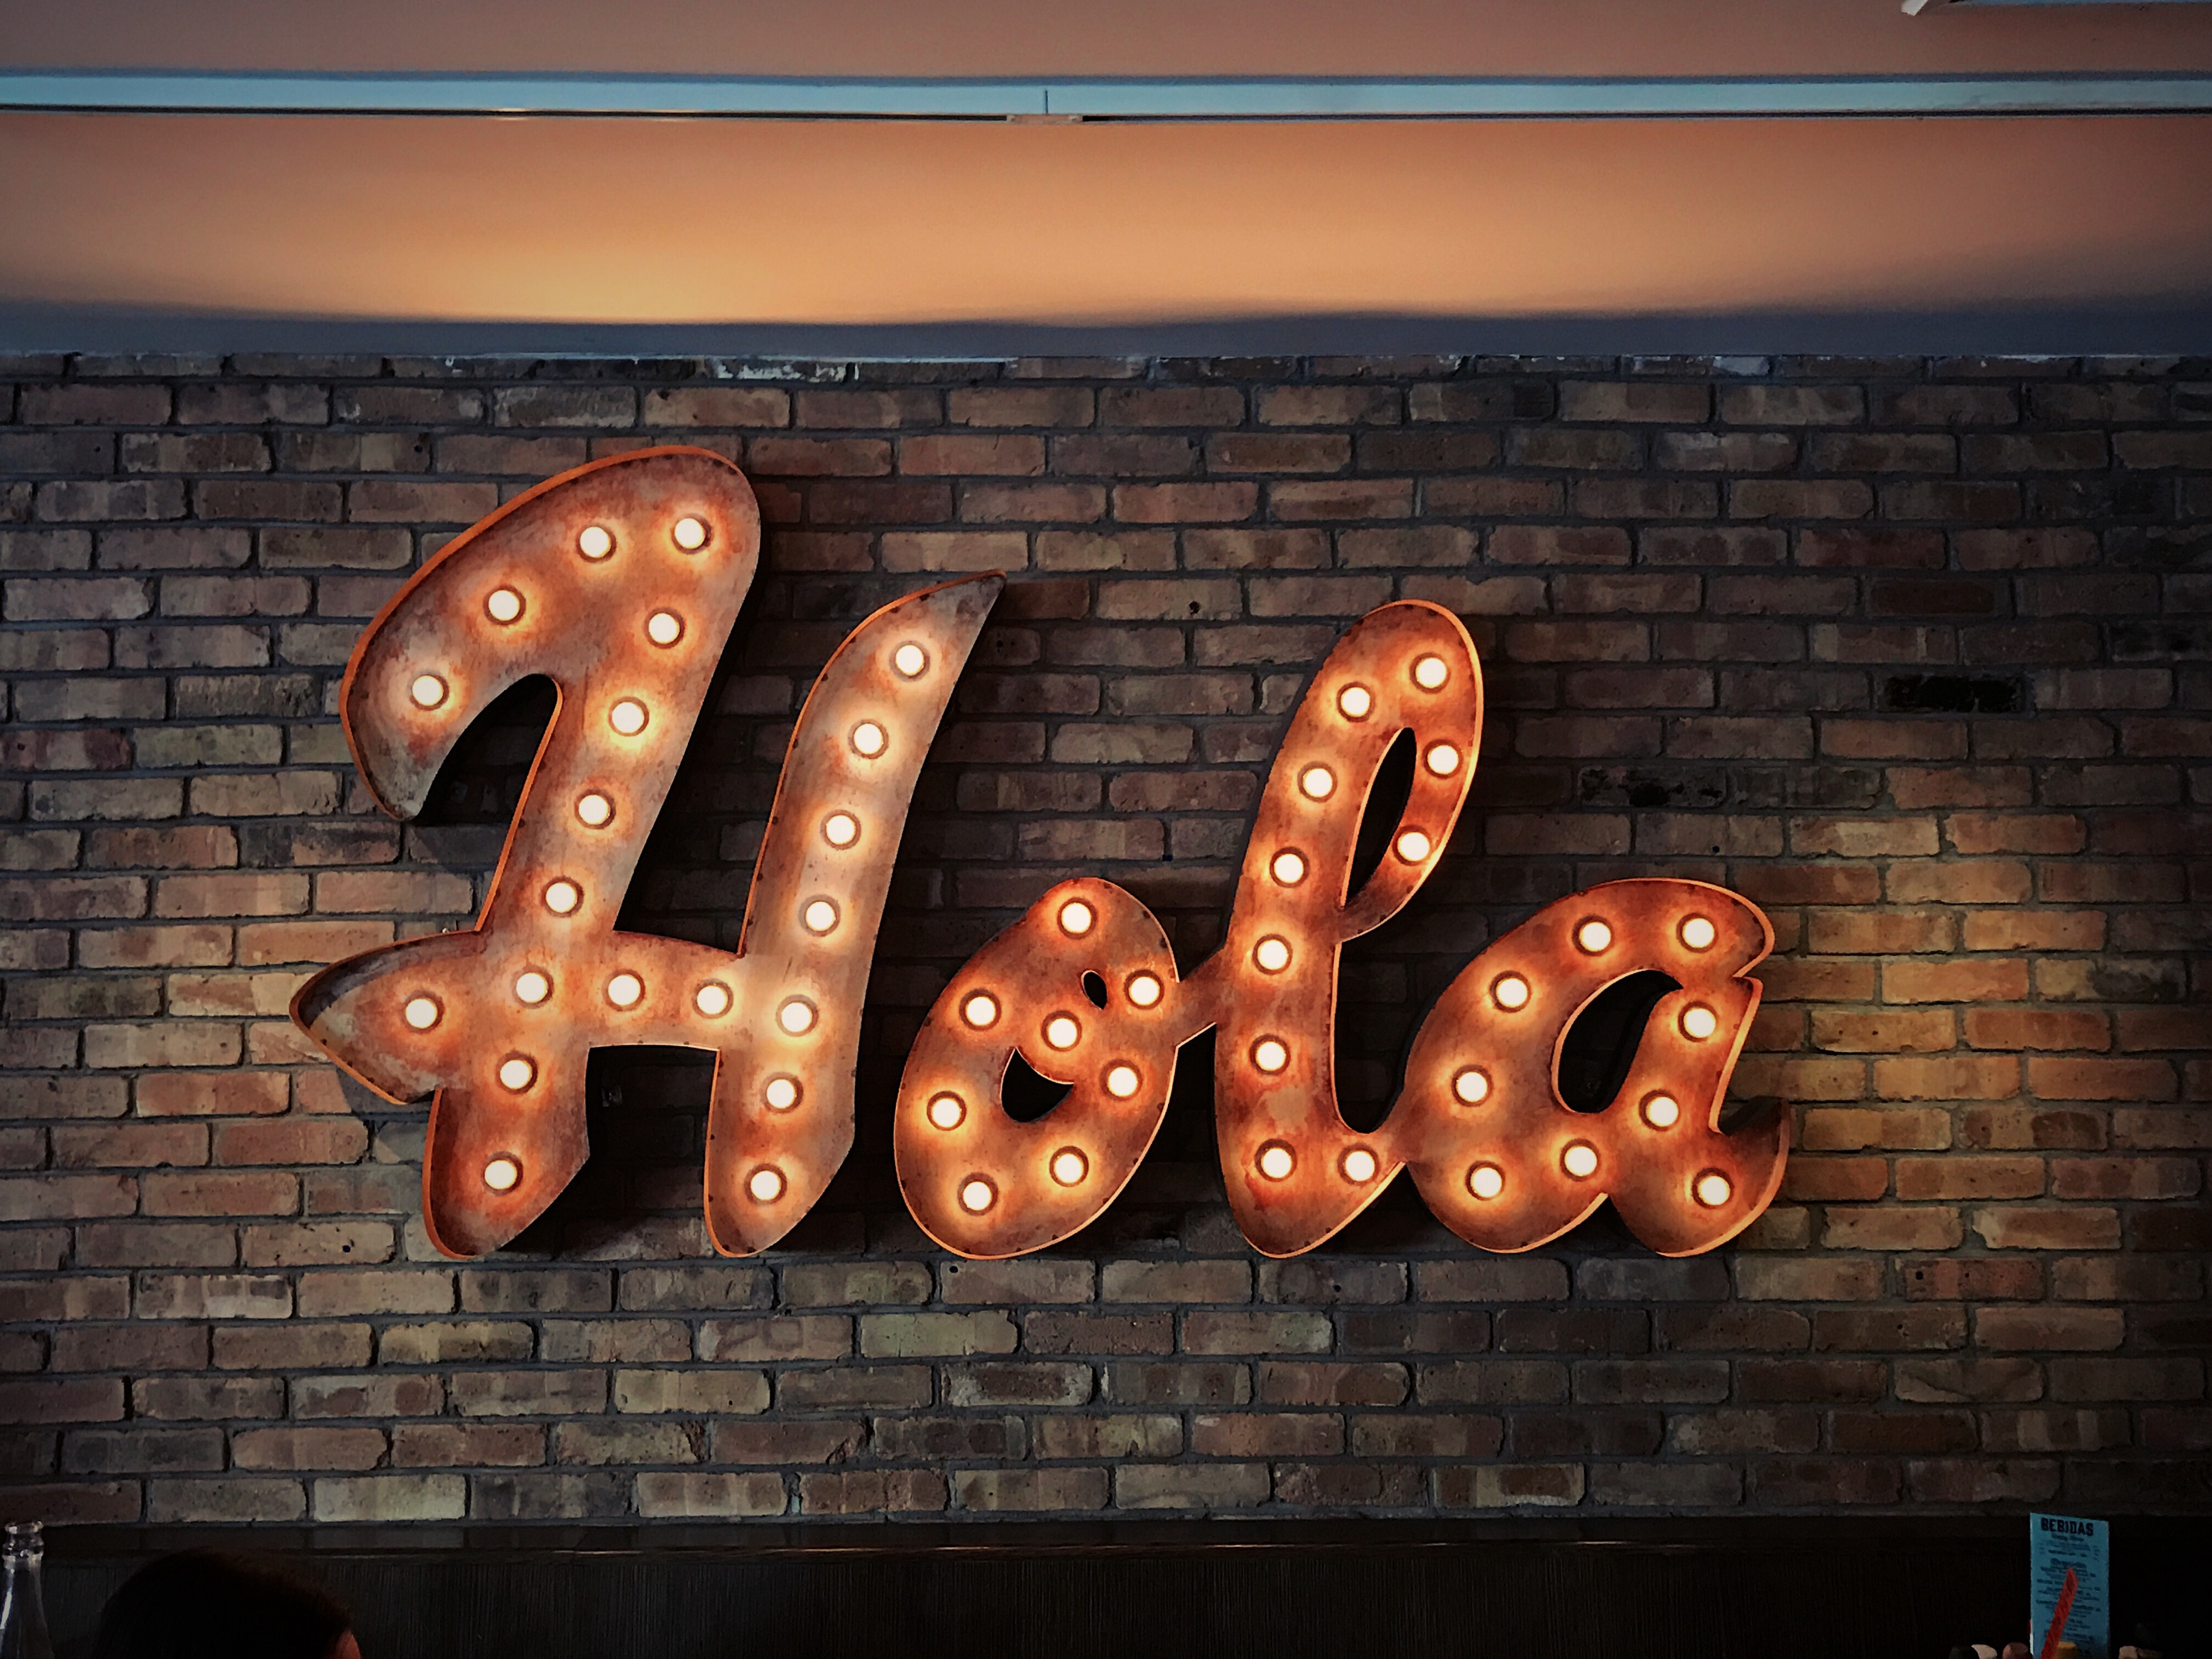 """Curvy font """"Hola"""" sign with orange background and light bulbs on a brick wall"""